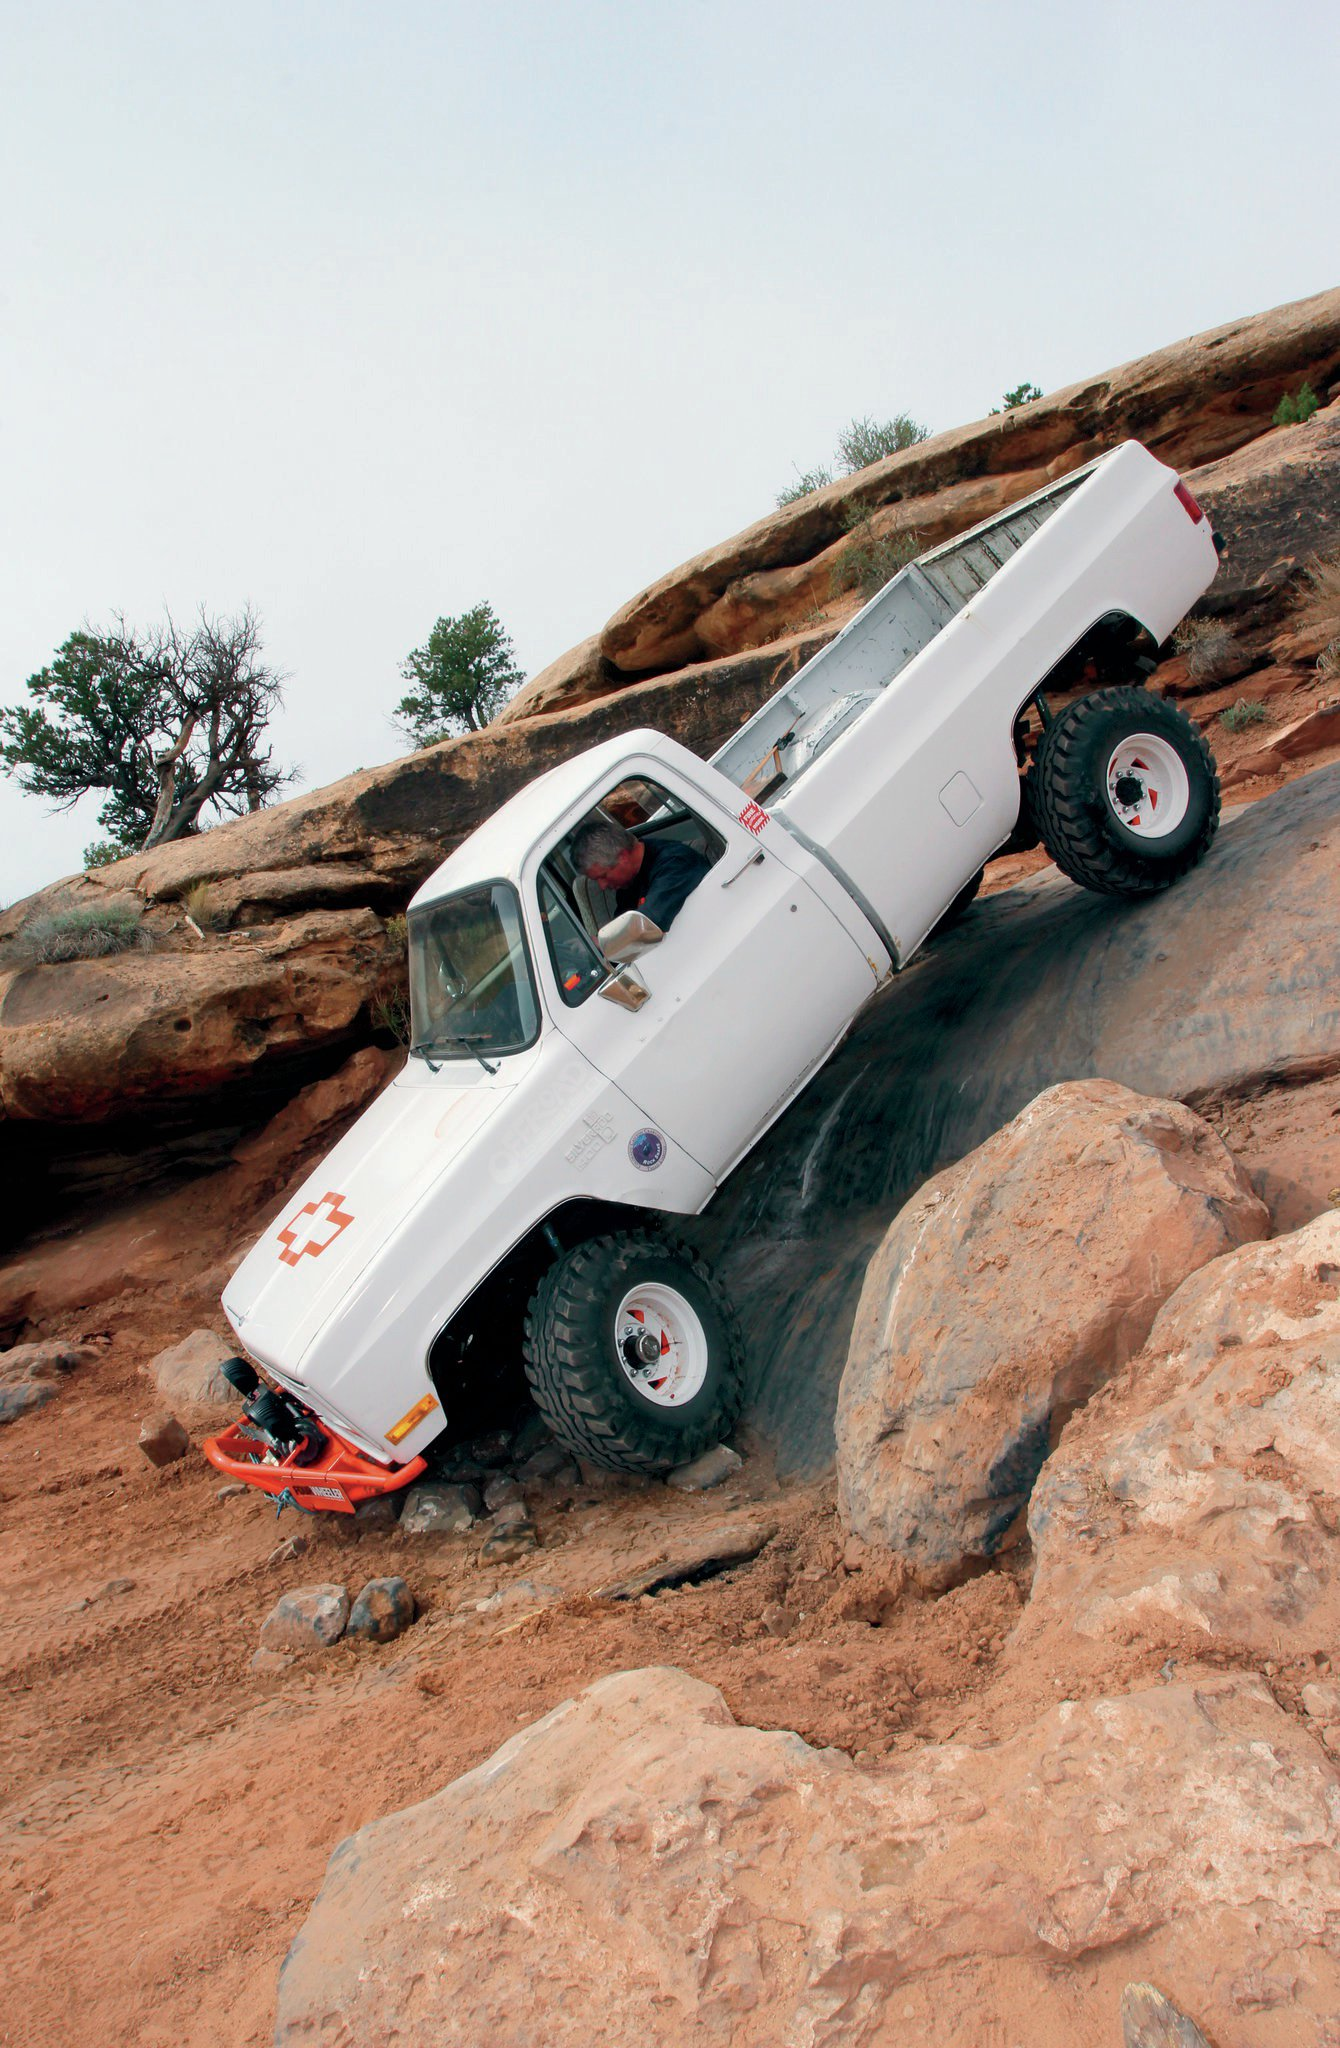 """Tom Cherry, the birthday boy of the Fullsize Invasion, showed that wheeling a longbed truck is not only possible, it's possible to do well. His 1986 Chevy K30 sports a built 400ci V-8, Edelbrock Pro-Flow fuel injection, SM465 four-speed transmission, NP208 T-case, Detroit Locker-equipped Dana 60 front axle, Detroit Locker-equipped GM 14-bolt rear axle, 4.56 gears, 4-inch suspension lift, Bilstein shocks, and 36-inch tires. On his tech sheet, Cherry wrote, """"I have no money. My budget is if I can't trade for it or get it for free, it don't happen. Being here is my birthday present, and today, April 16, is my birthday."""""""